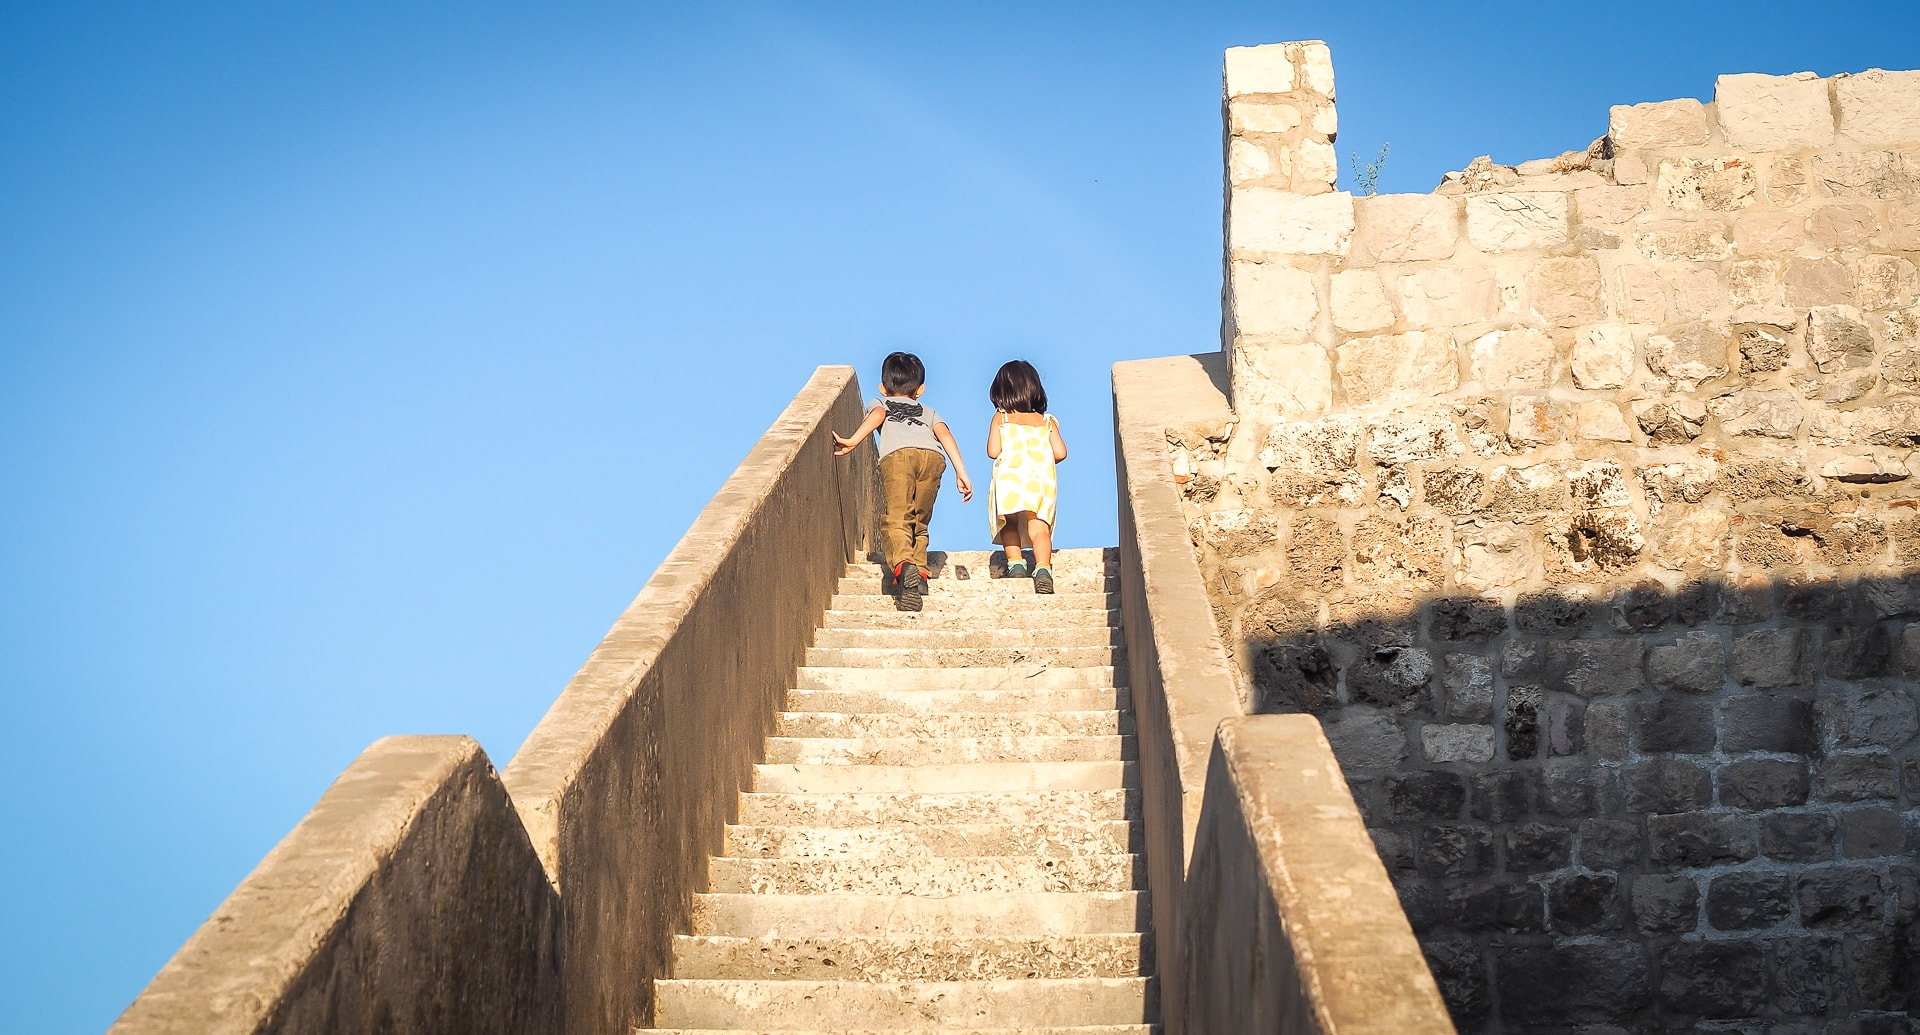 Walking the city walls of Dubrovnik is one of the best things to do in Croatia with kids